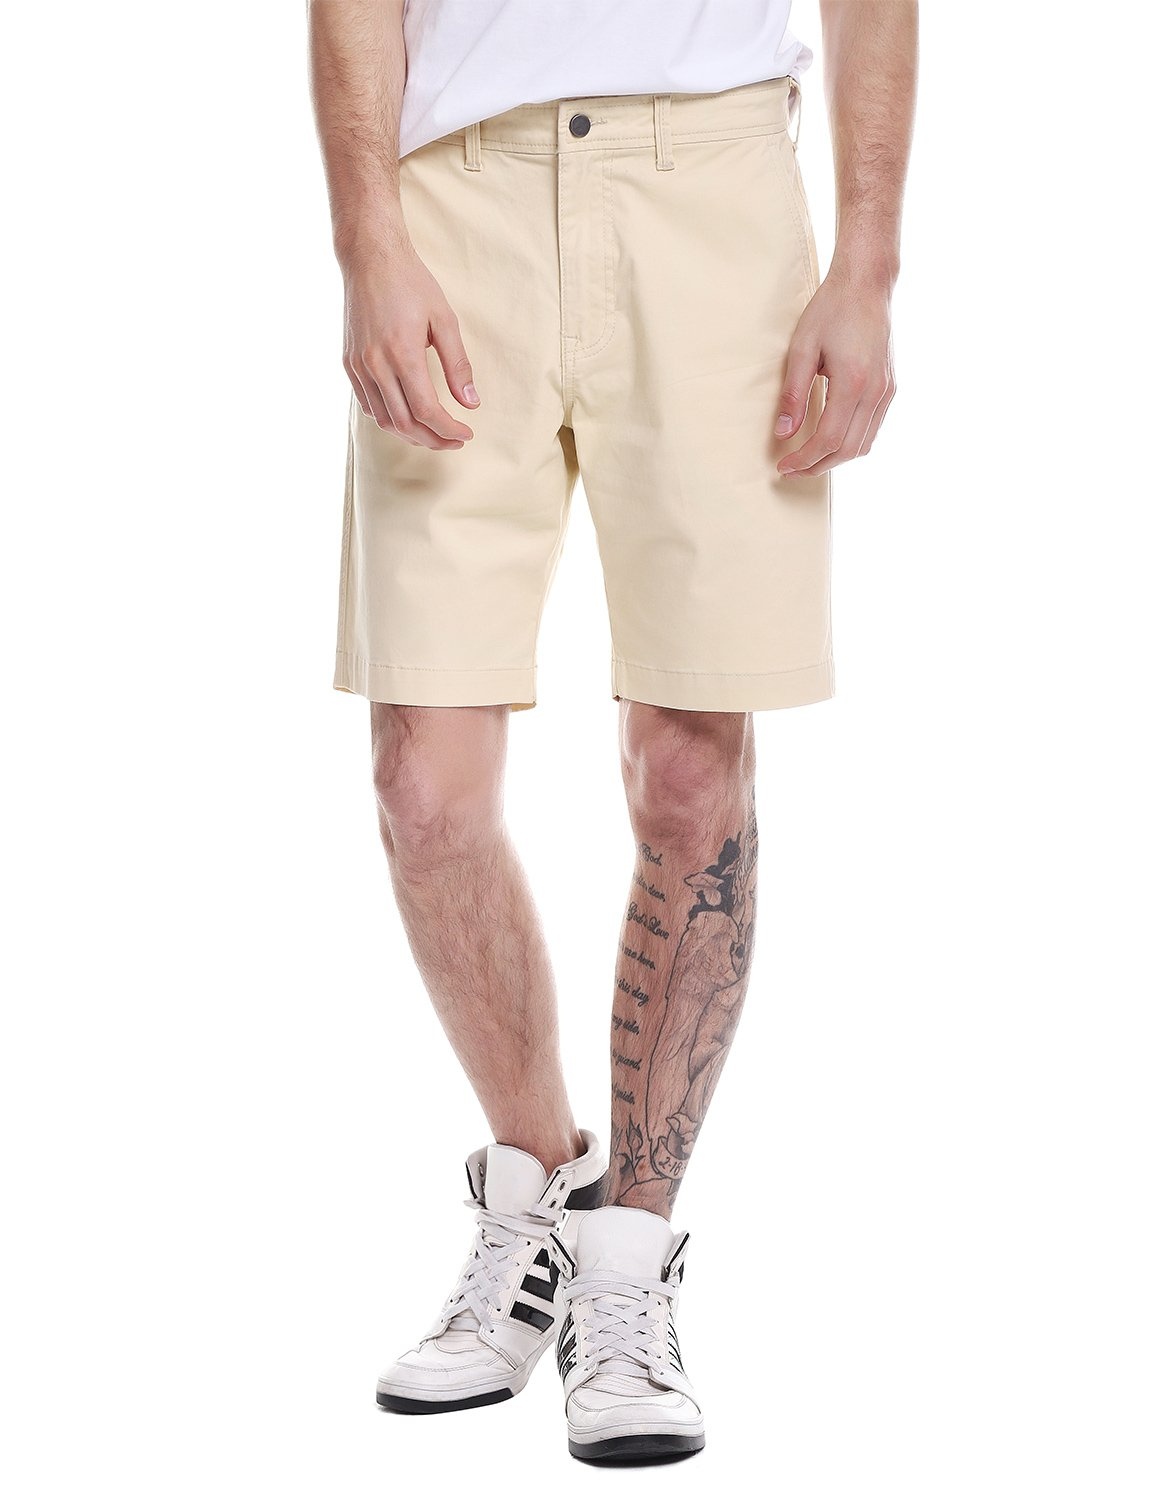 ZAN.STYLE Men's Casual Relaxed Fit Flat Front Cotton Chino Shorts Light Khaki 31(US 31/32)